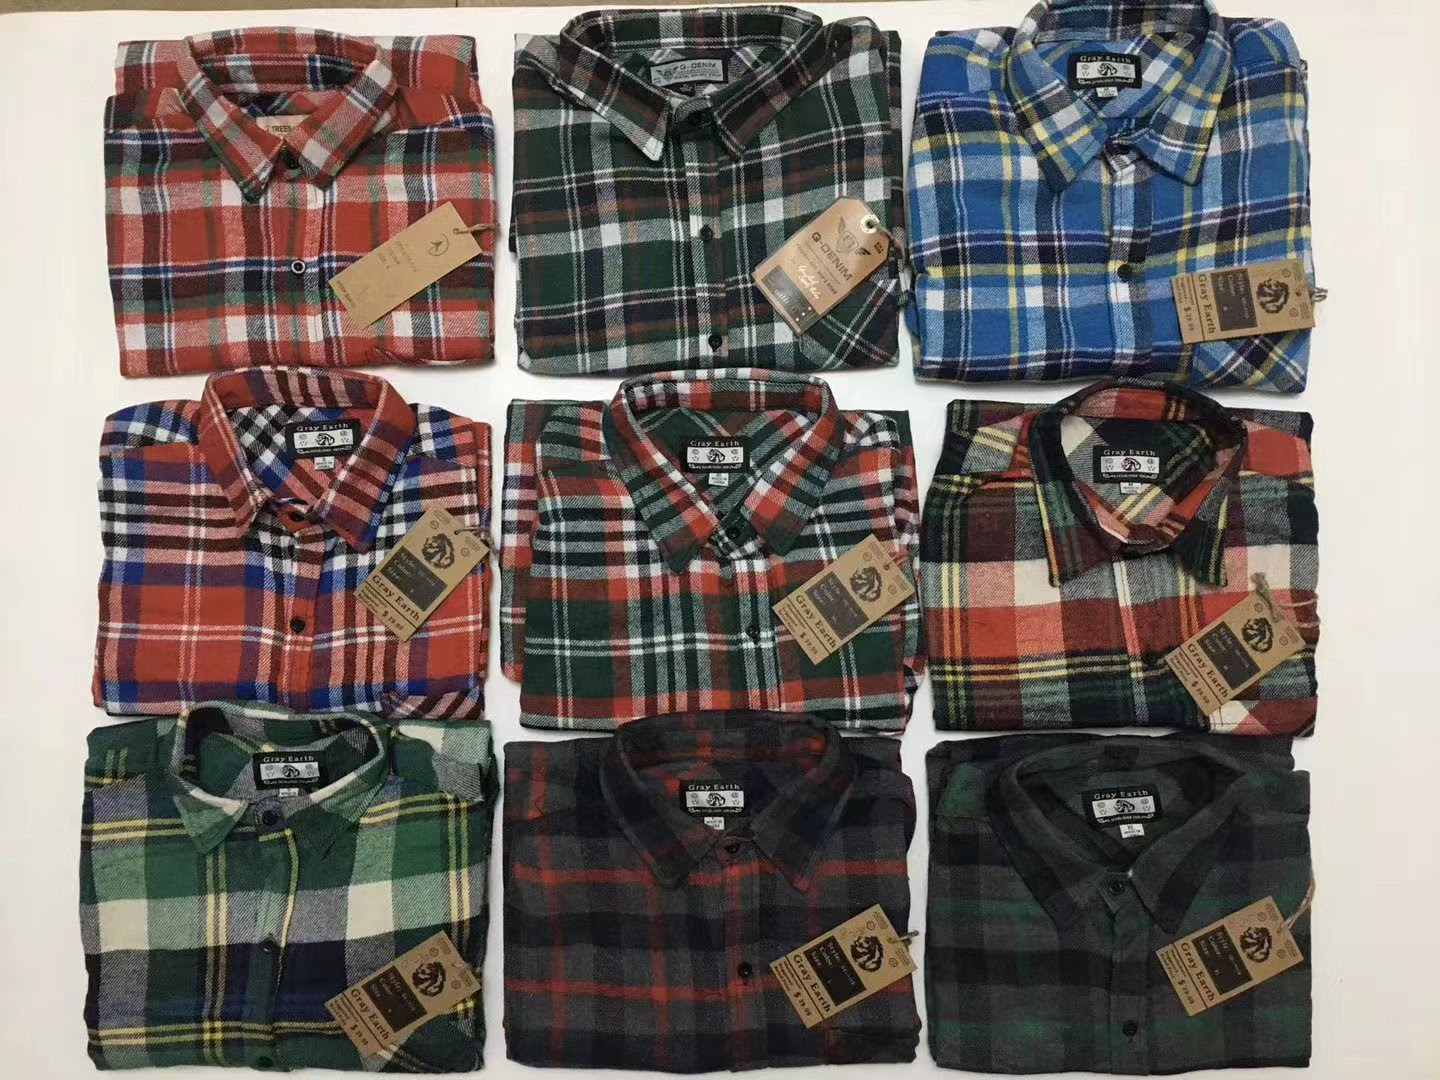 Stocklot Item GS20200918 50,600pcs of leisure shirt for men